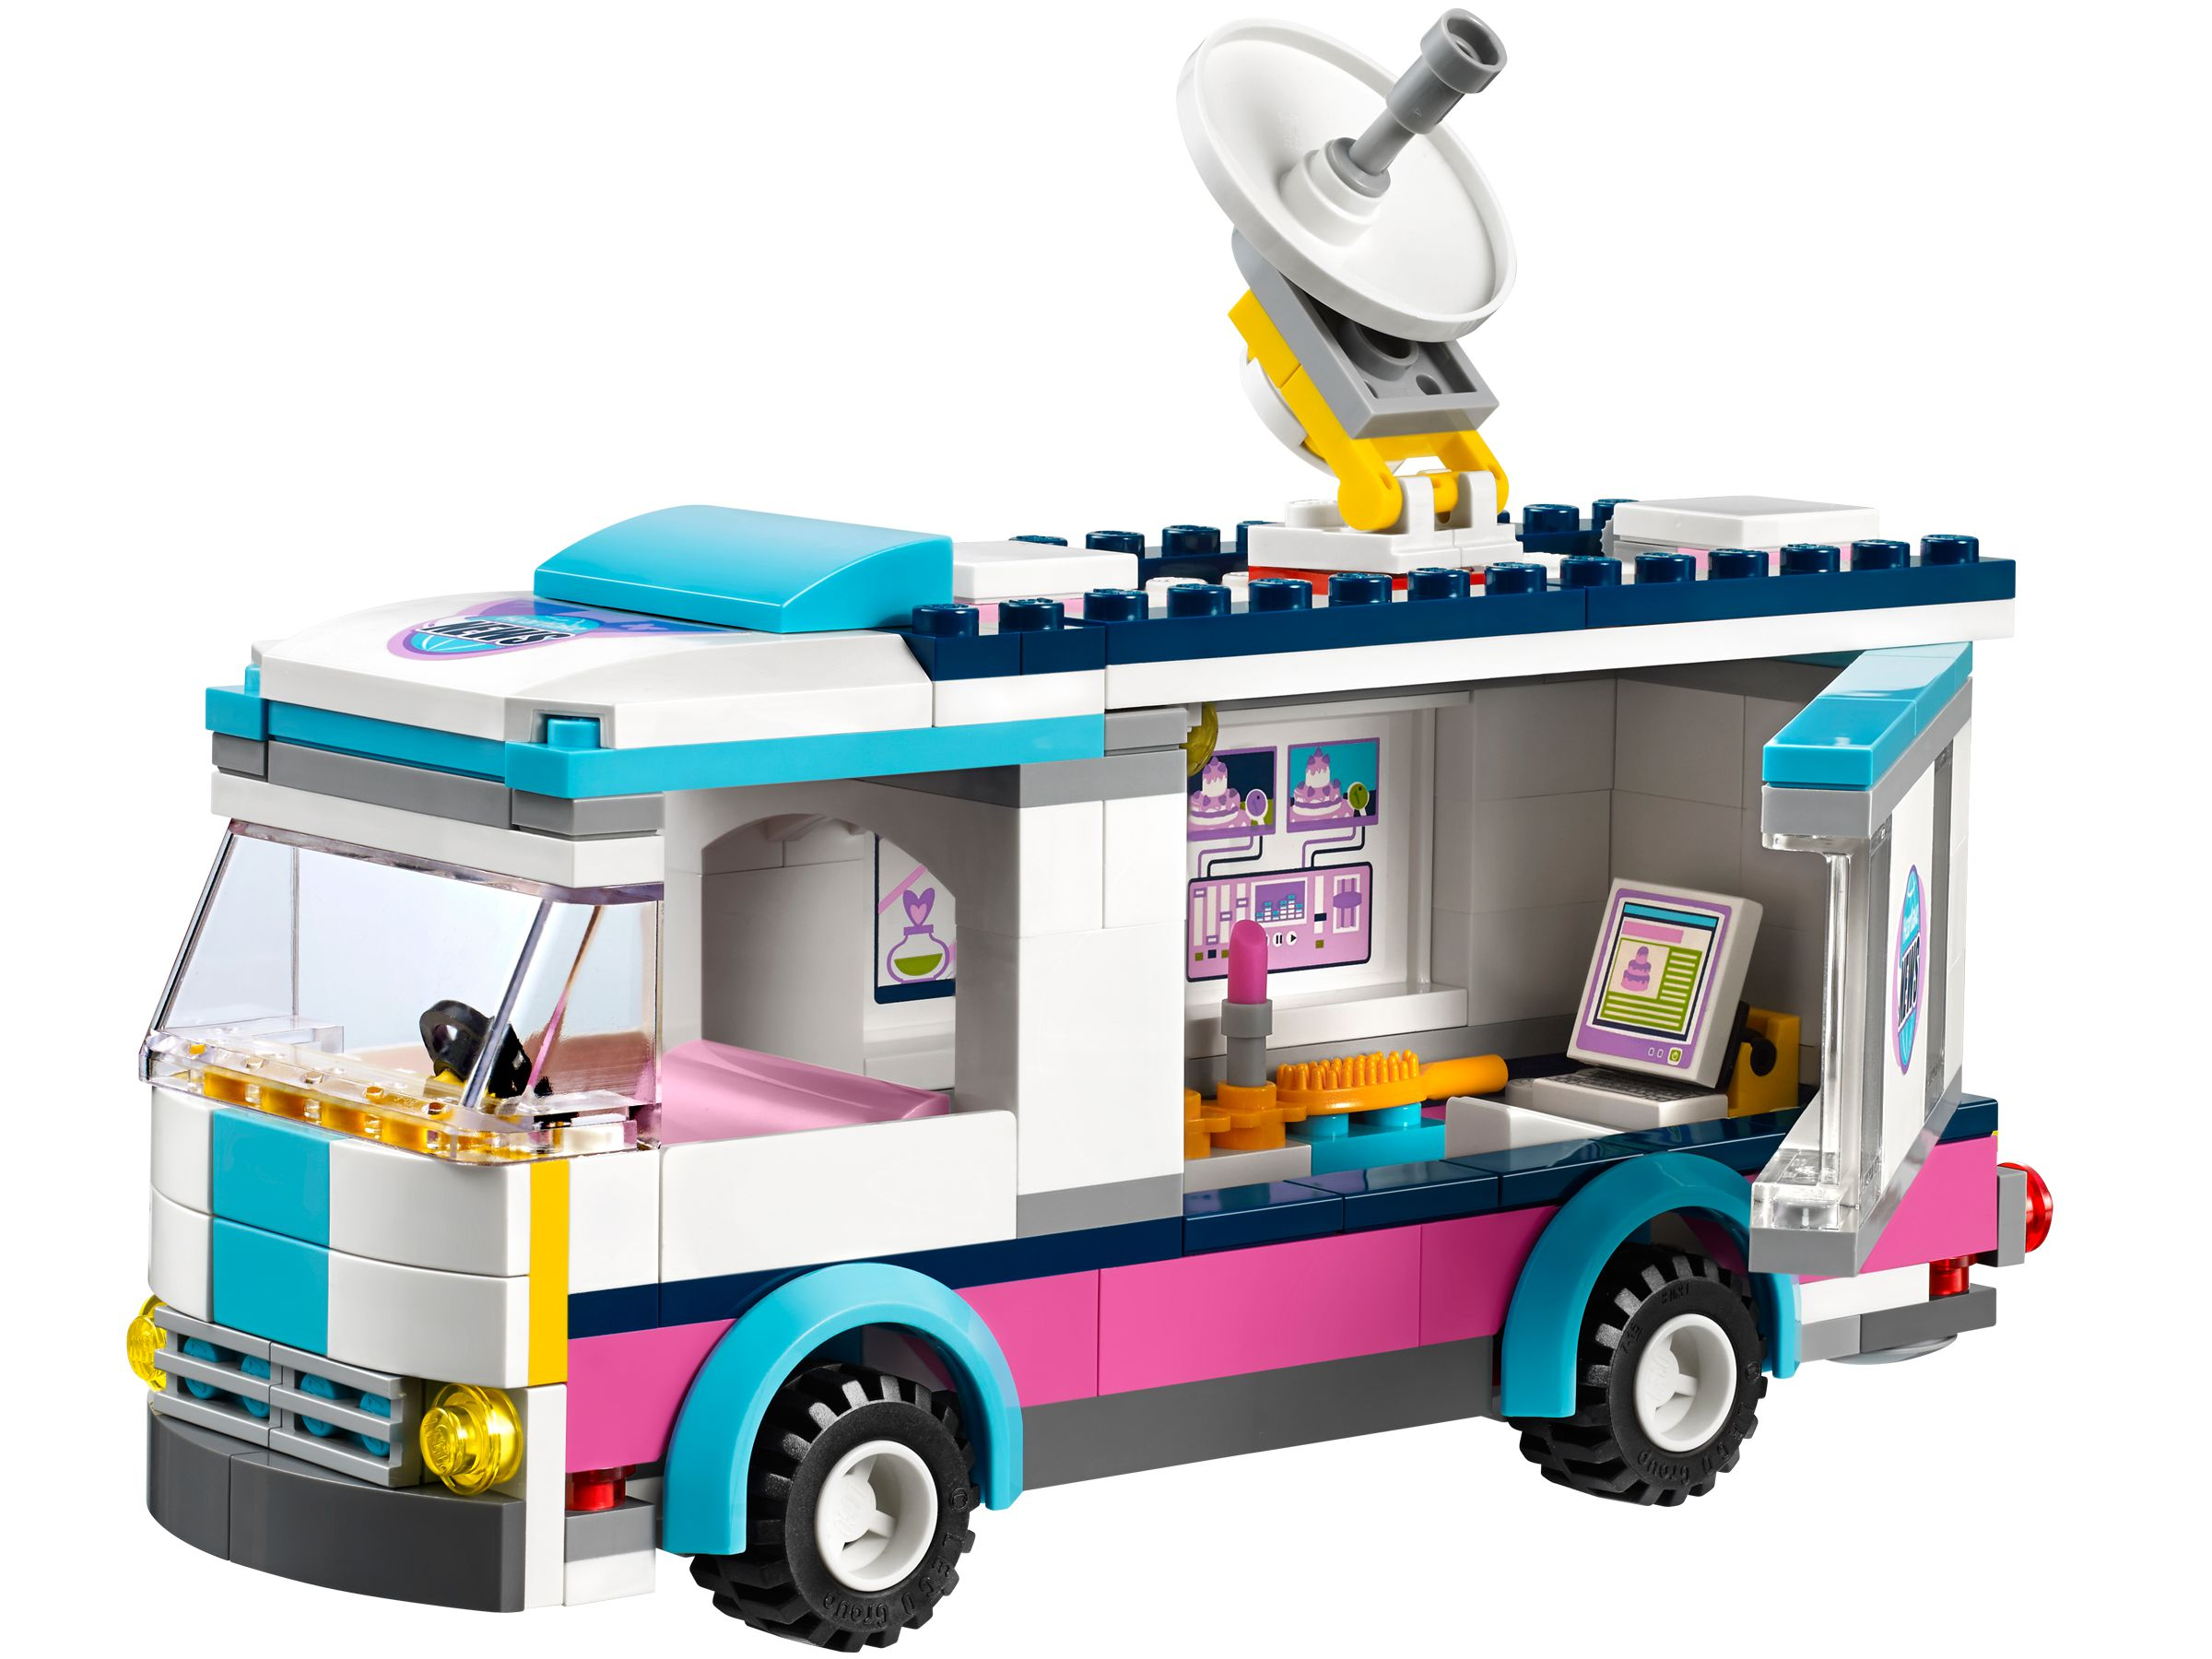 LEGO Friends 41056 Mobile Fernsehstation LEGO_41056_alt6.jpg